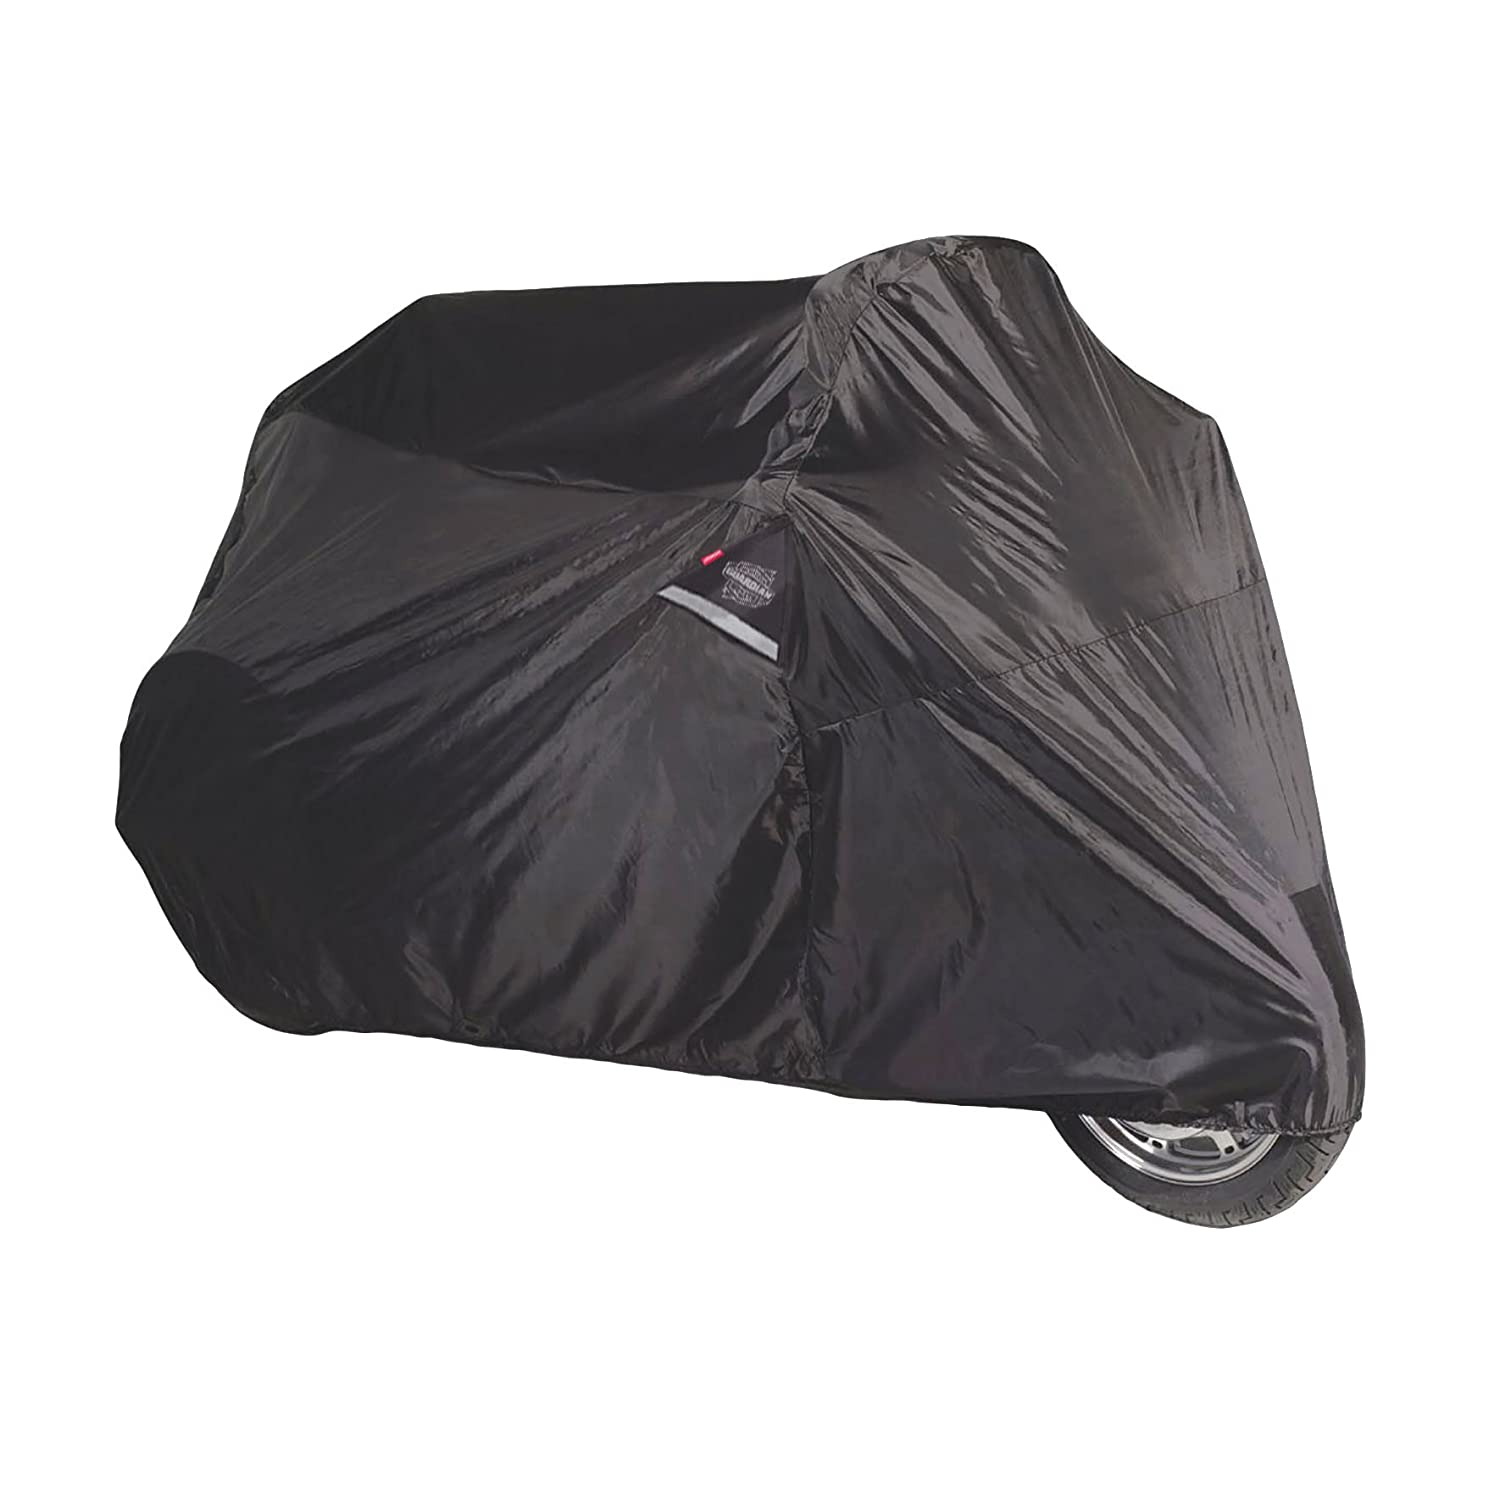 Dowco Guardian Weatherall Plus Motorcycle cover2 XXXL Trike Cover 51060-00 XXXL Trike Cover  B00JDPVJDU